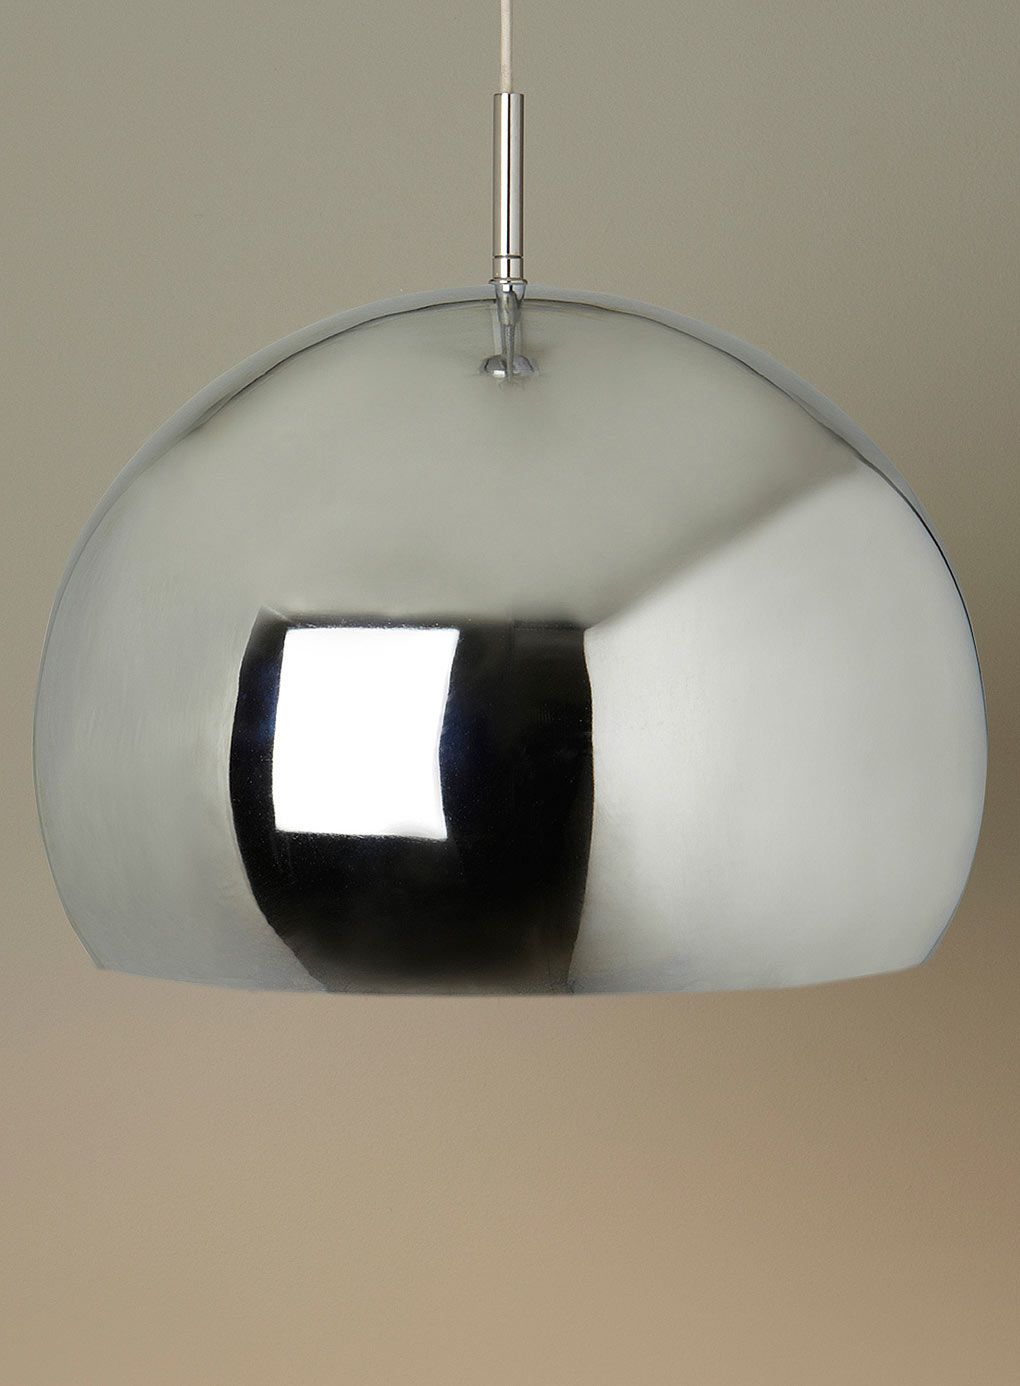 Chrome reno pendant bhs future move pinterest bhs lights reflect your surroundings with a retro inspired chrome pendant chrome reno pendant lighting essentials for the home mozeypictures Choice Image